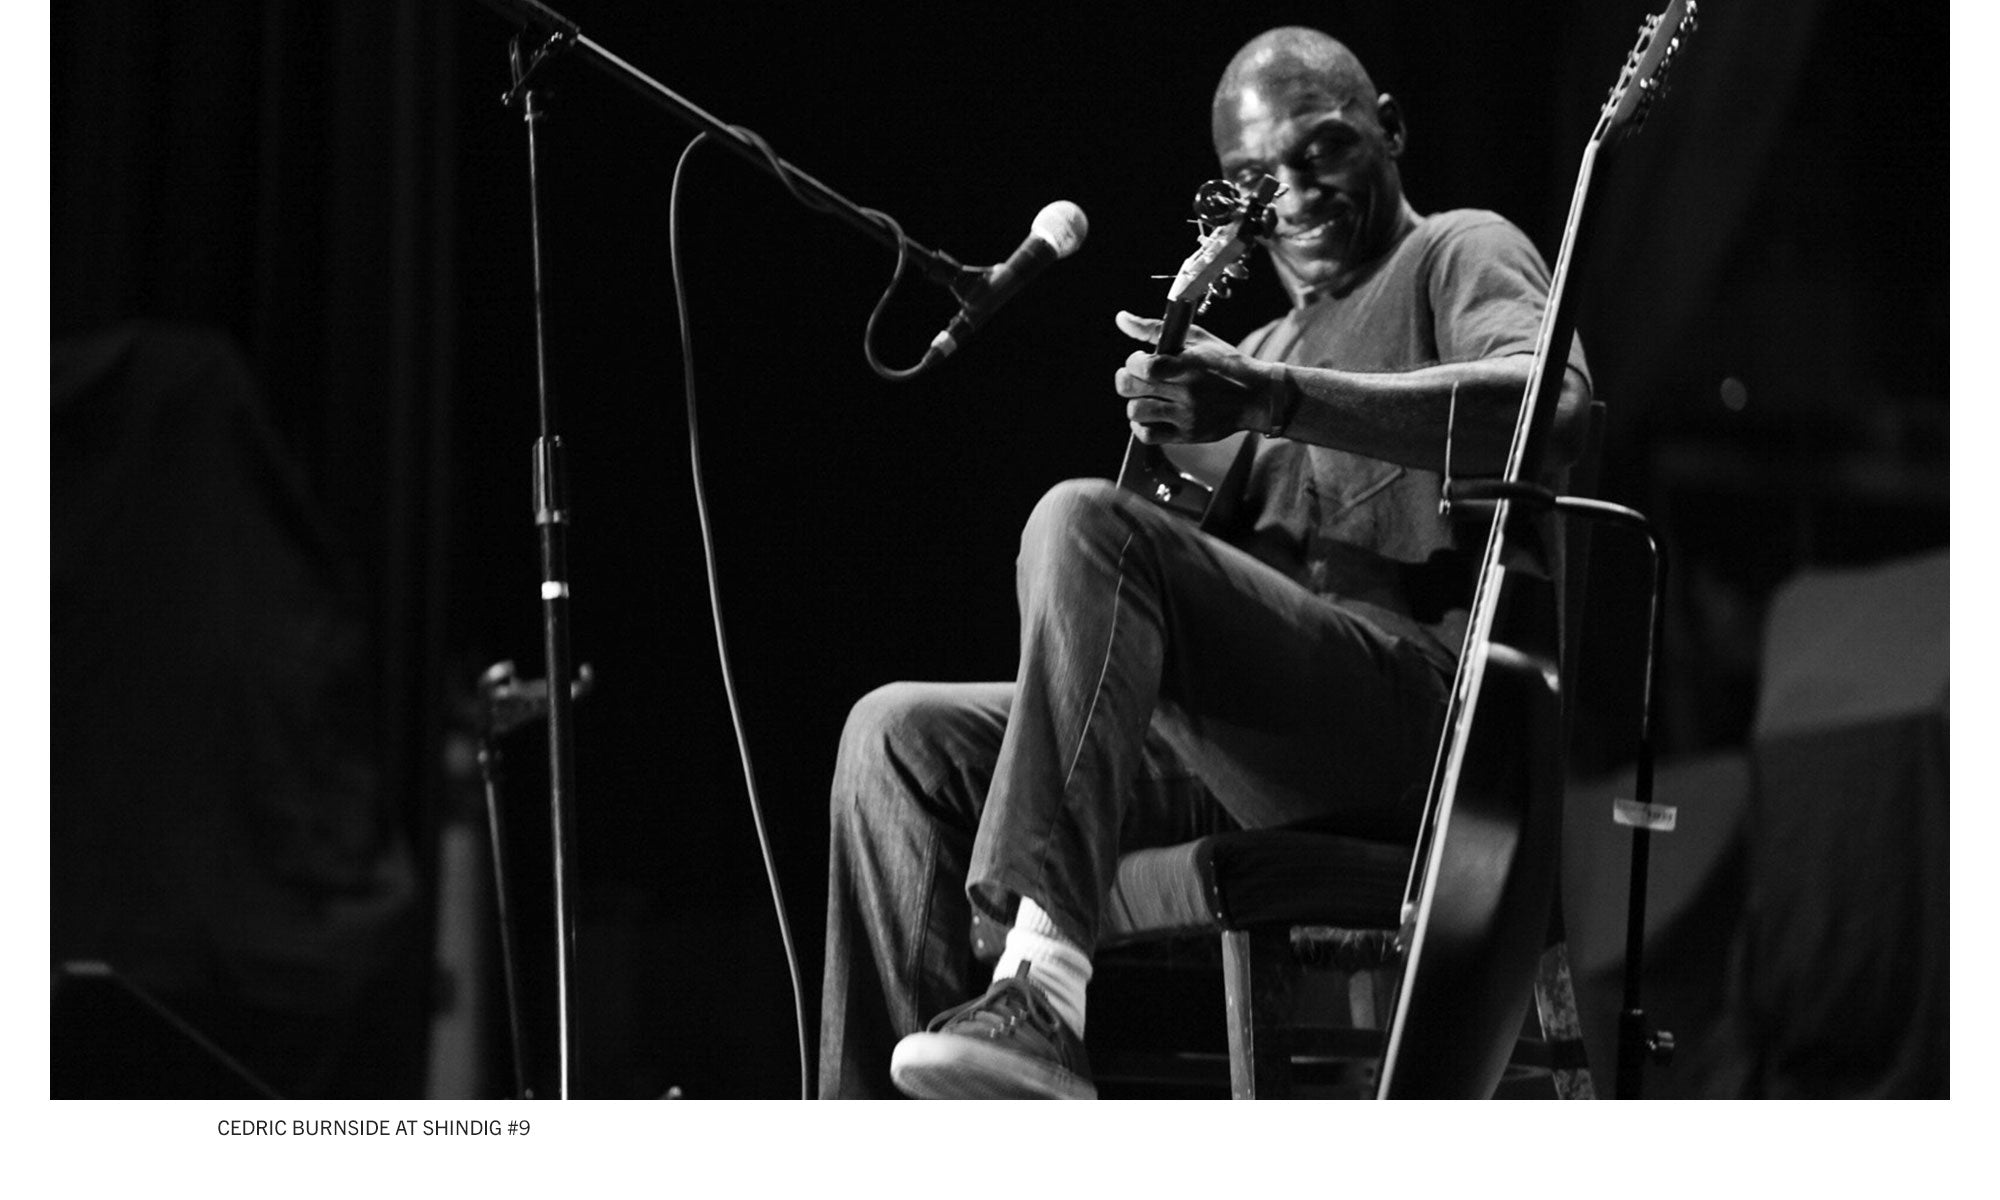 Photo of singer/songwriter Cedric Burnside playing at the famous Billy Reid Shindig #9